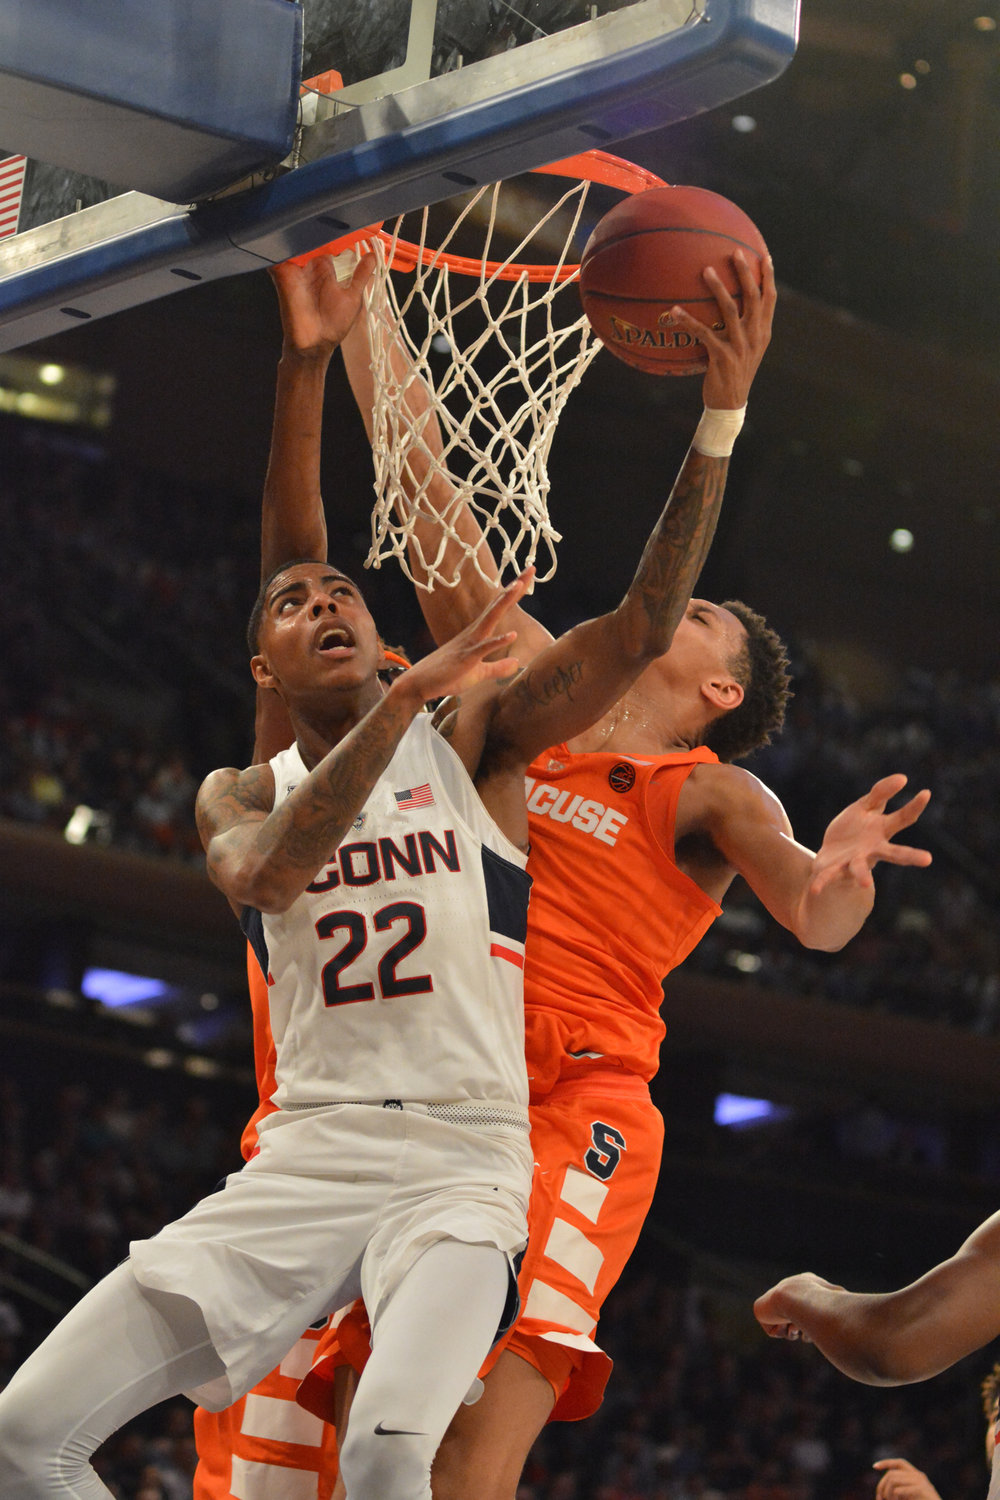 Terry Larrier (22) attempts a lay-up during the Huskies 72-63 loss to the Syracuse Orange at Madison Square Garden on Tuesday, Dec. 6, 2017. (Olivia Stenger/The Daily Campus)